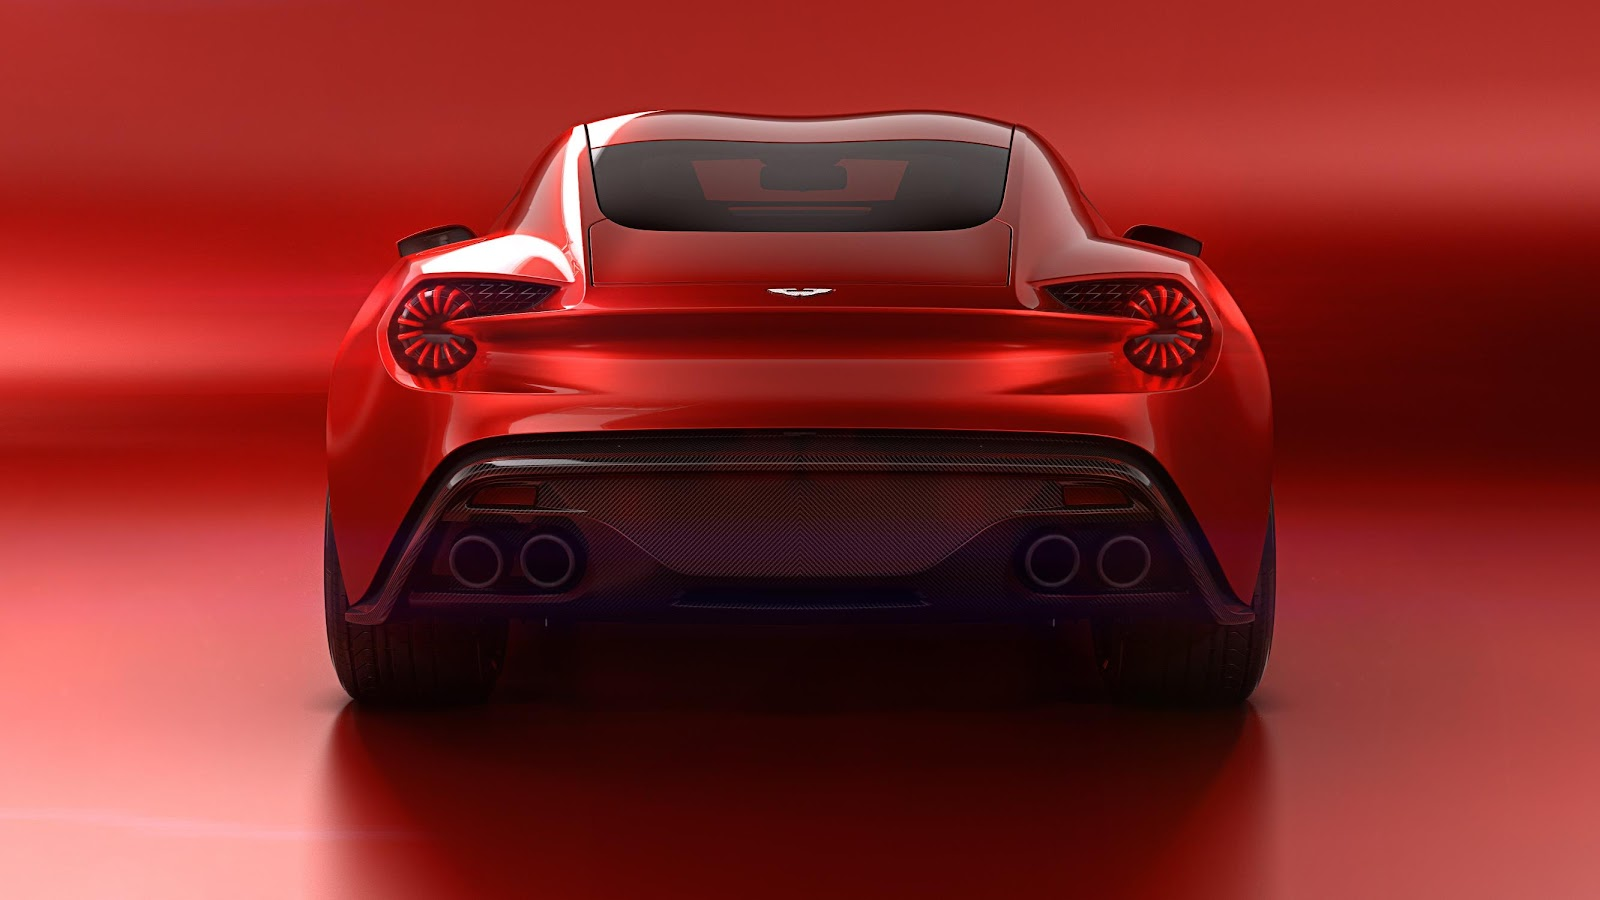 aston-martin-vanquish-zagato-speedster-rendered-as-the-rumored-collector-car_12.jpg